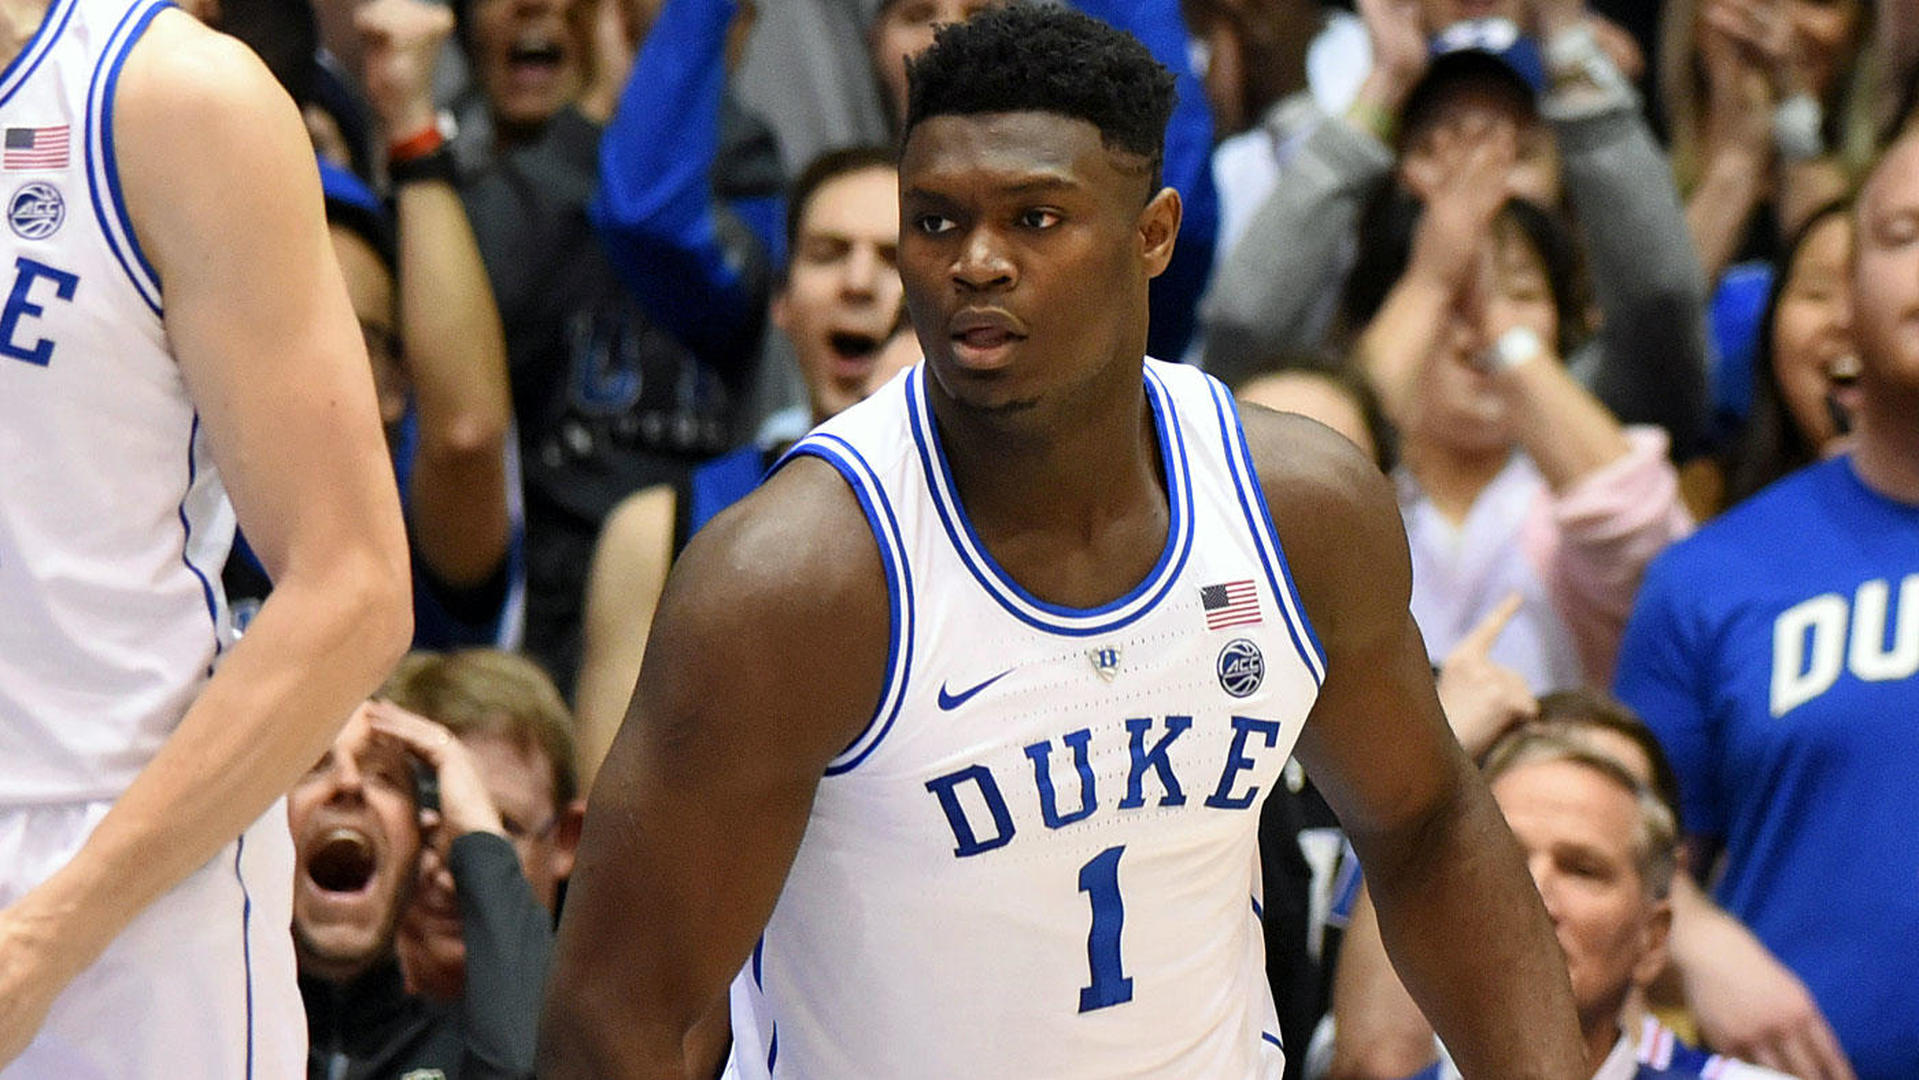 Duke's Zion Williamson claims he gained 100 pounds in two years during high school